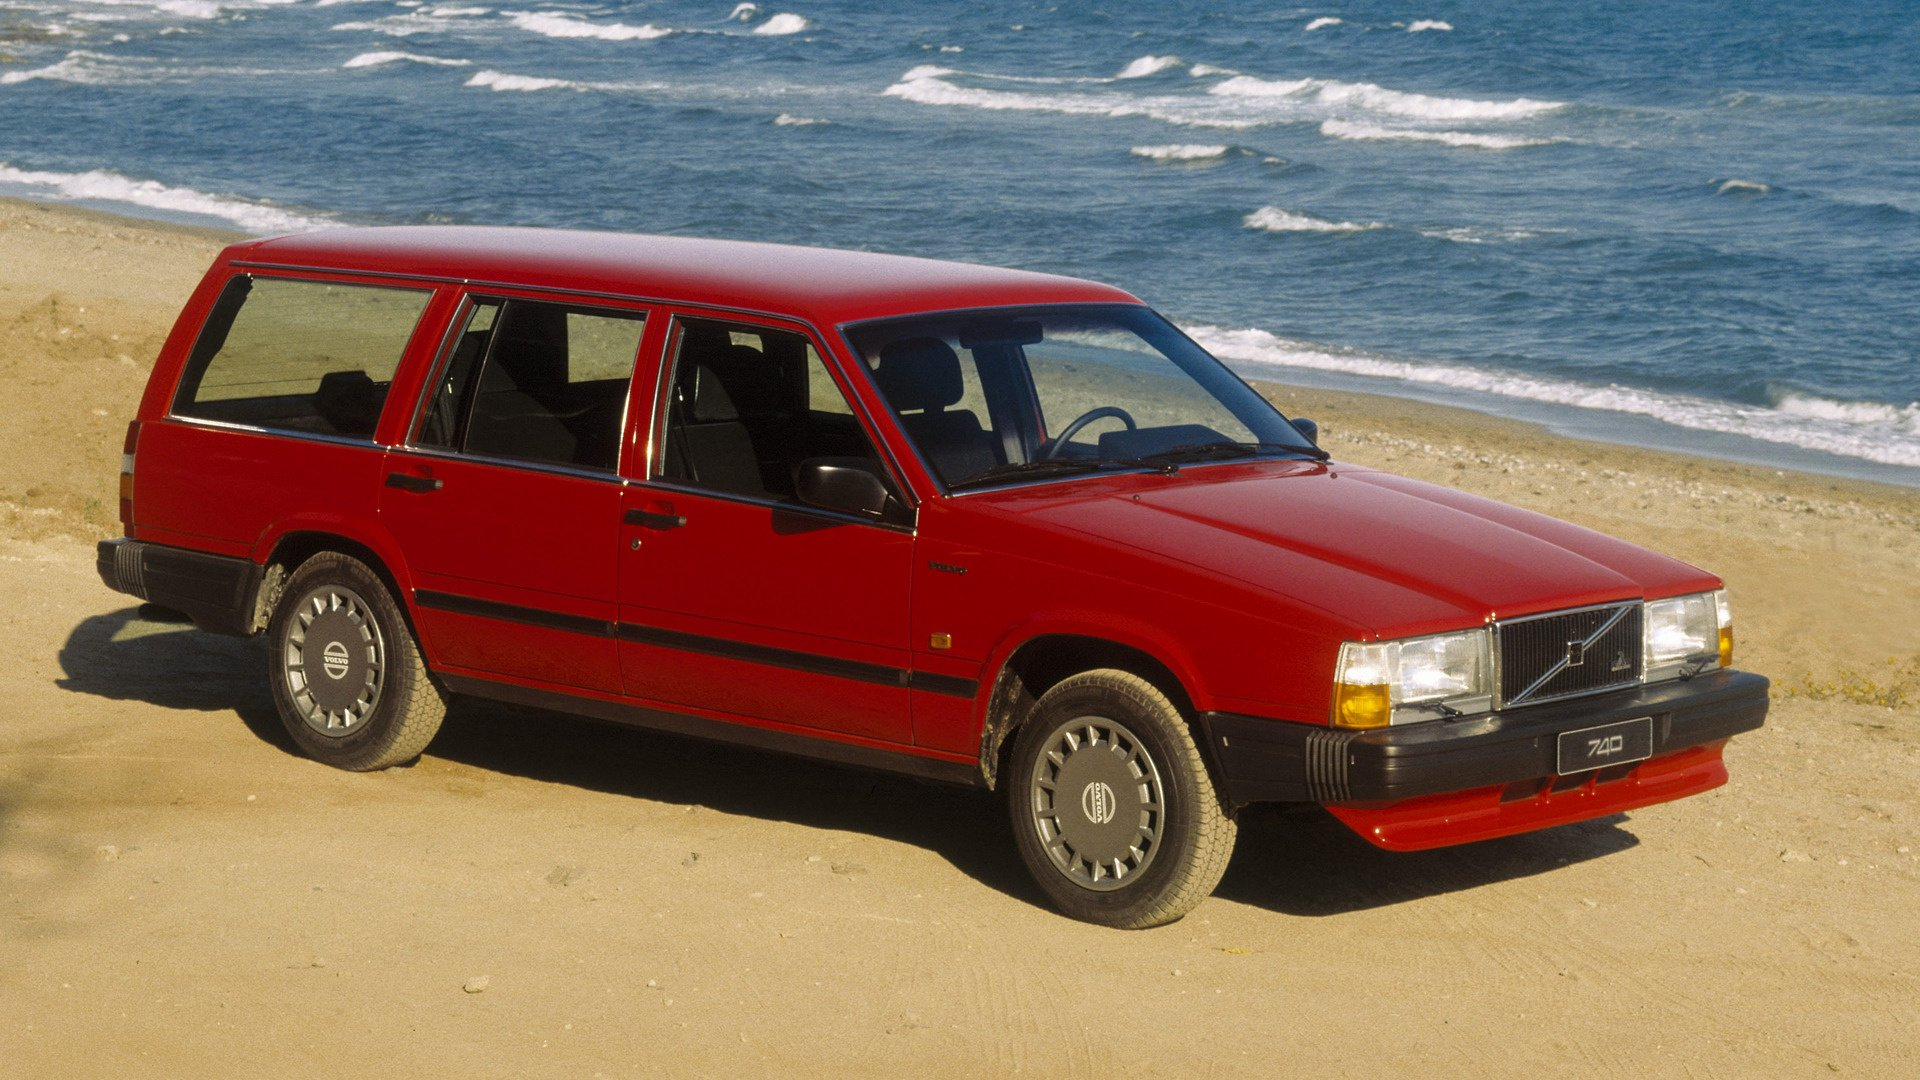 Vehicles - Volvo 700 Series  Kombi Red Car Wallpaper